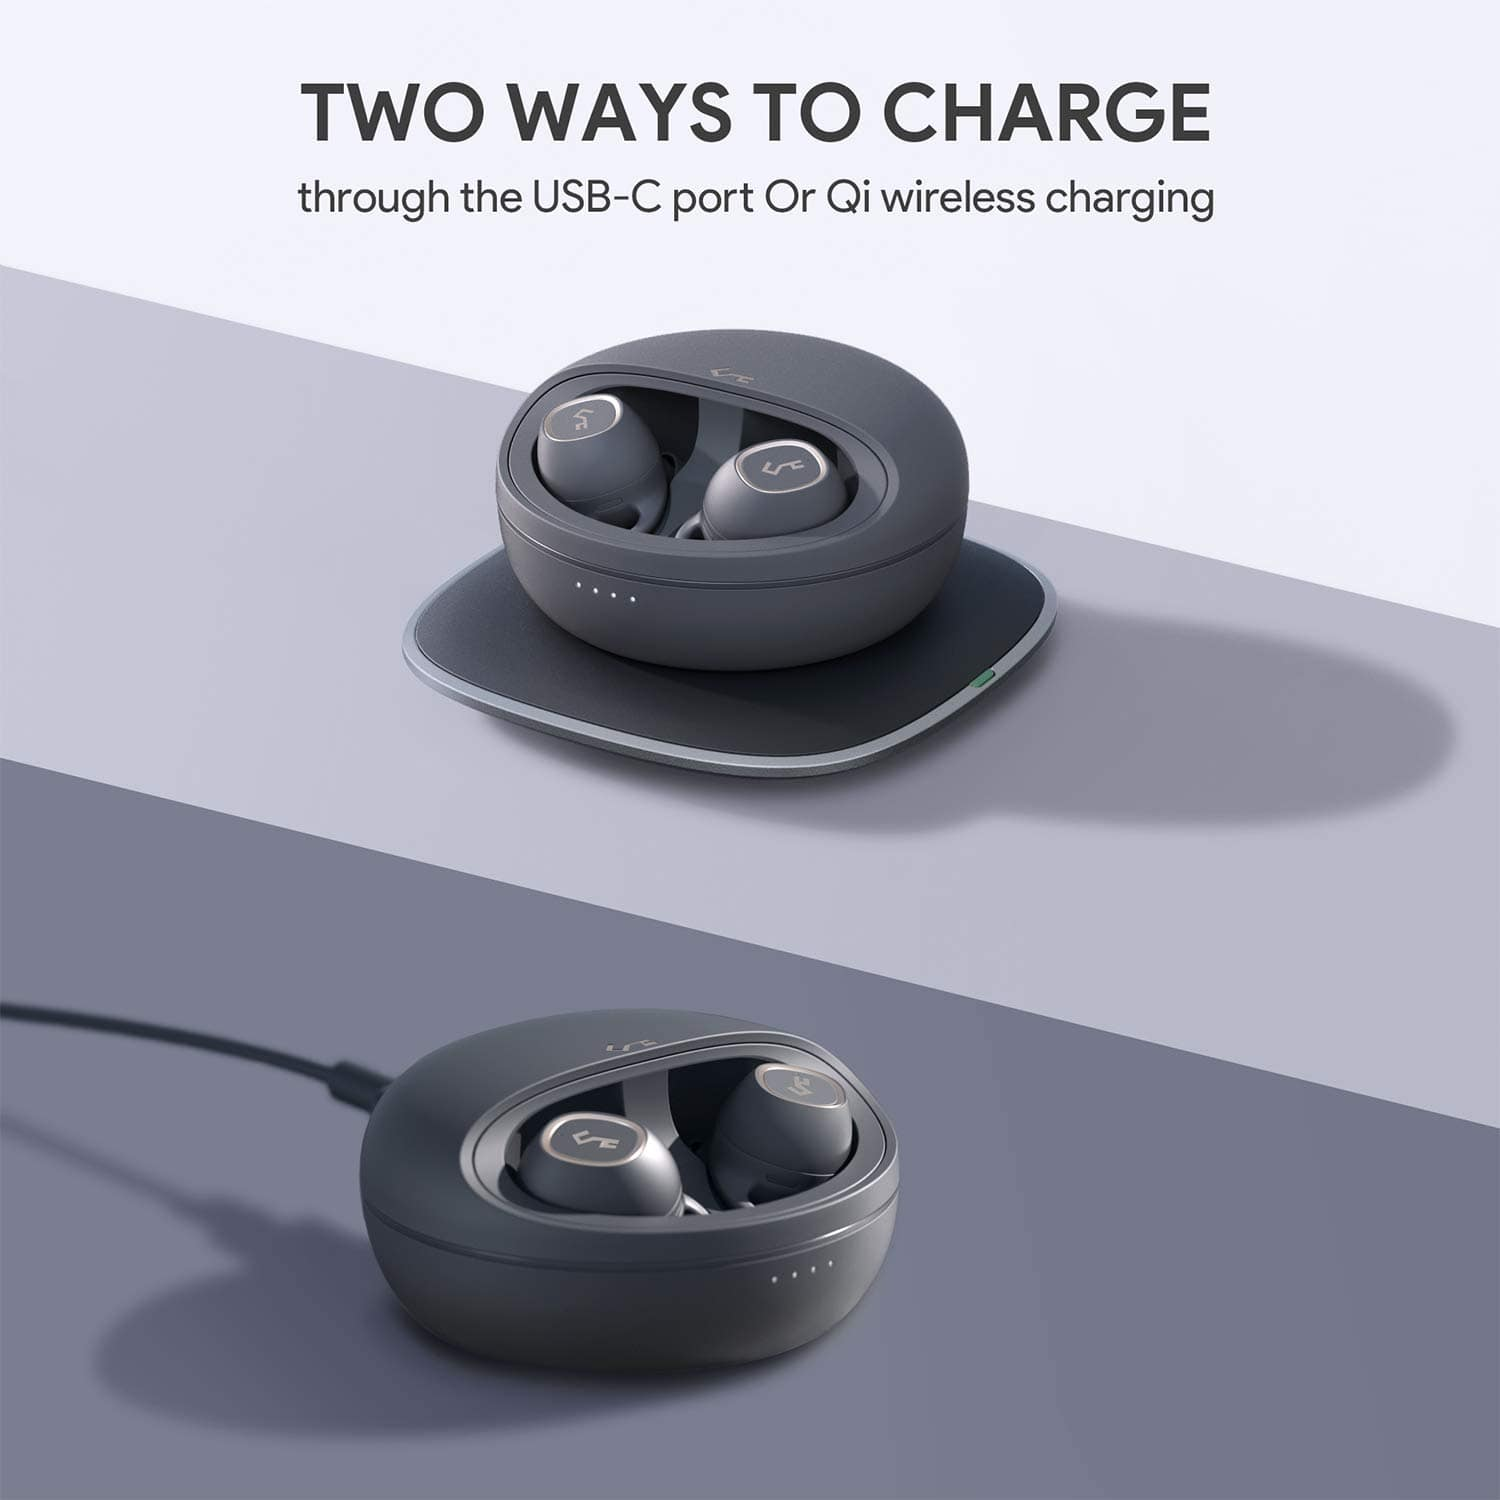 AUKEY Key Series T10, Wireless Earbuds $71.99 (or less $57.79 new customers)